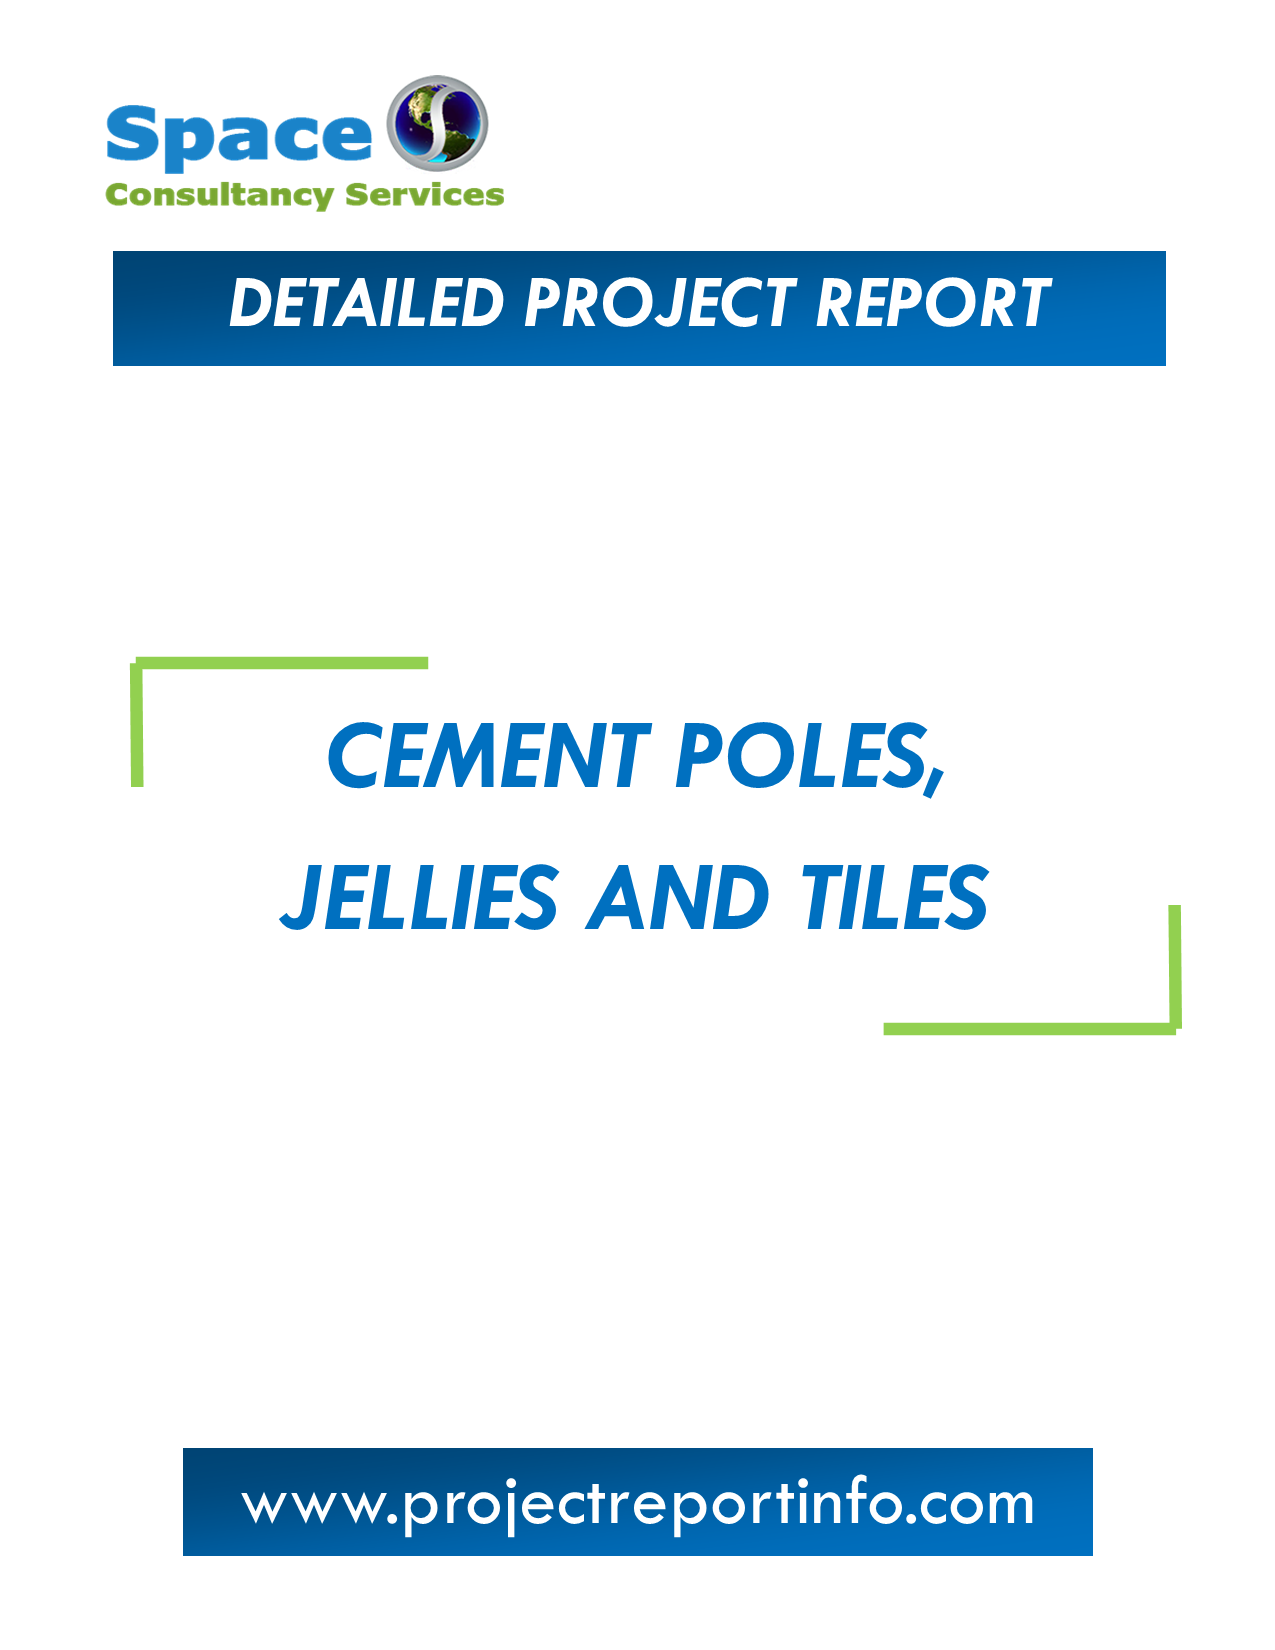 Project Report on Cement Poles Jellies and Tiles Manufacturing